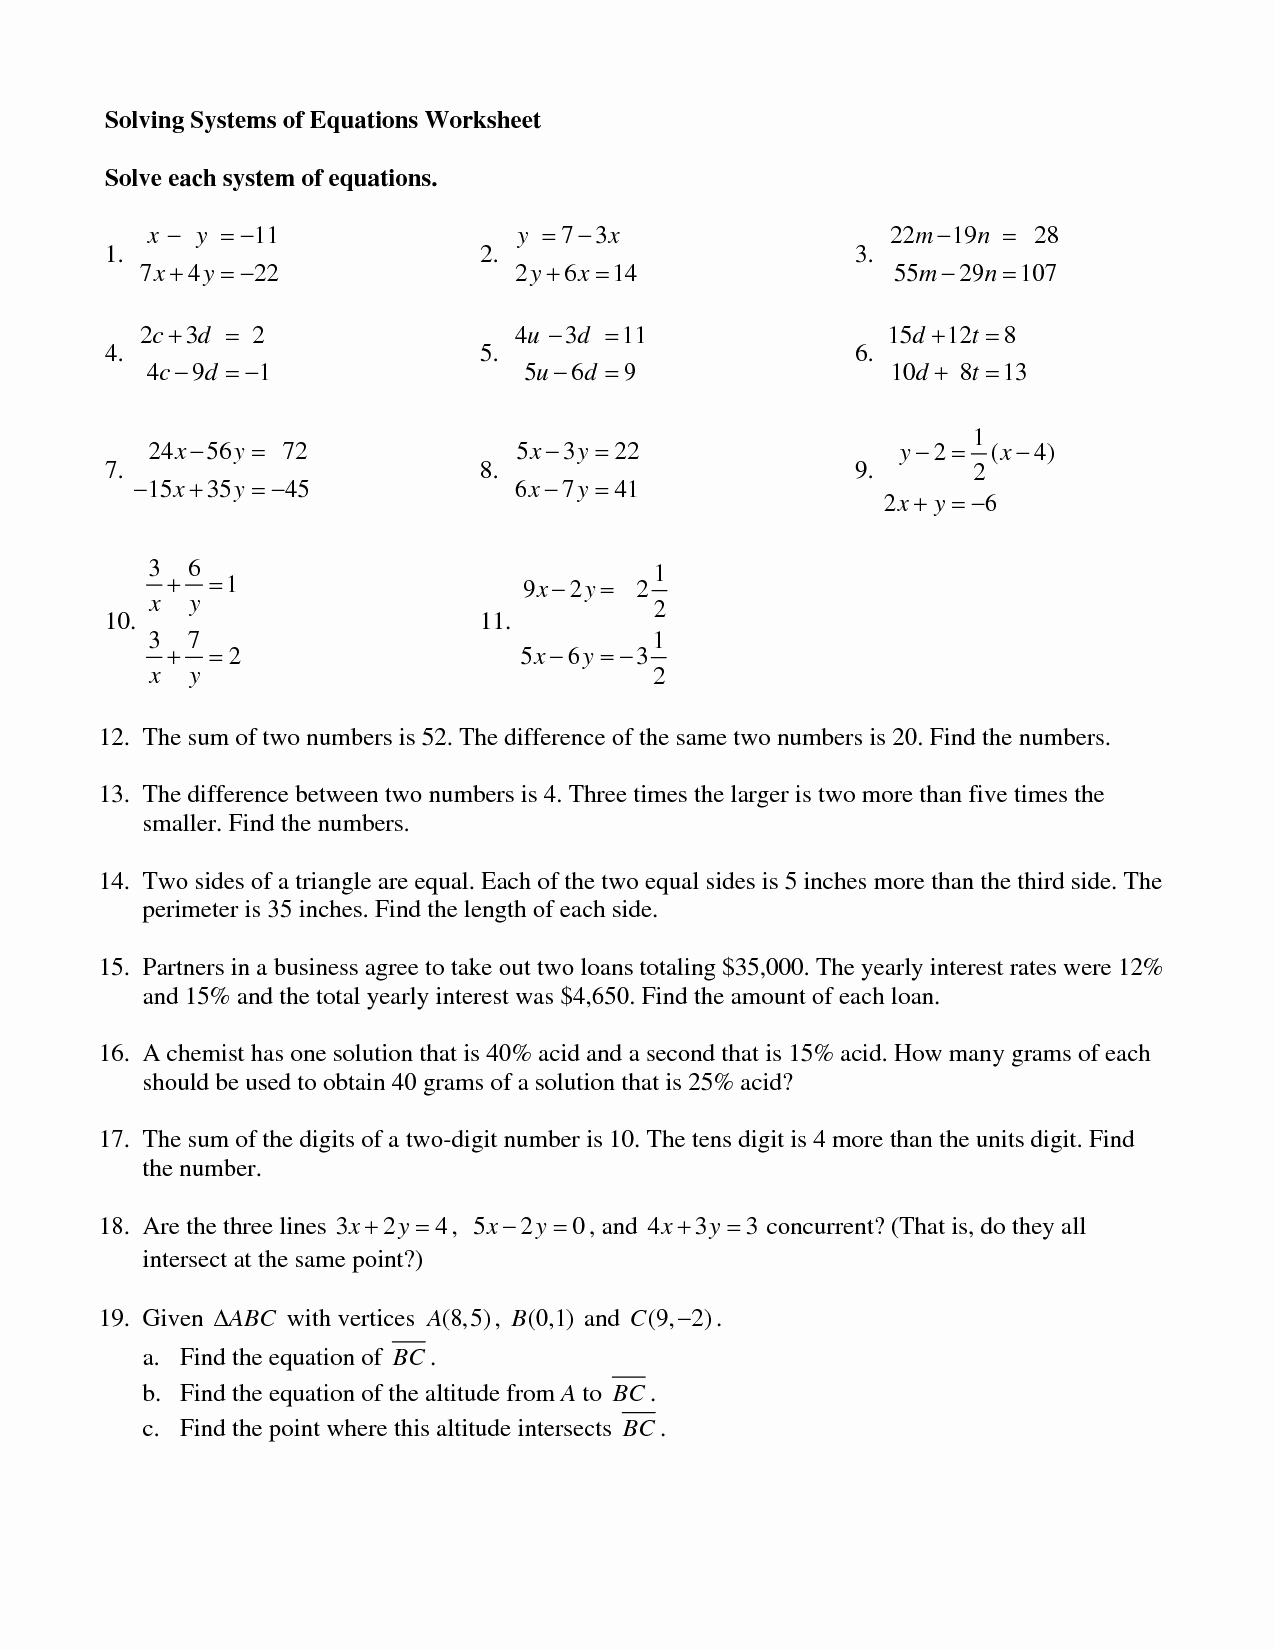 Solving Systems by Elimination Worksheet Elegant 15 Best Of Systems Equations Worksheets Printing